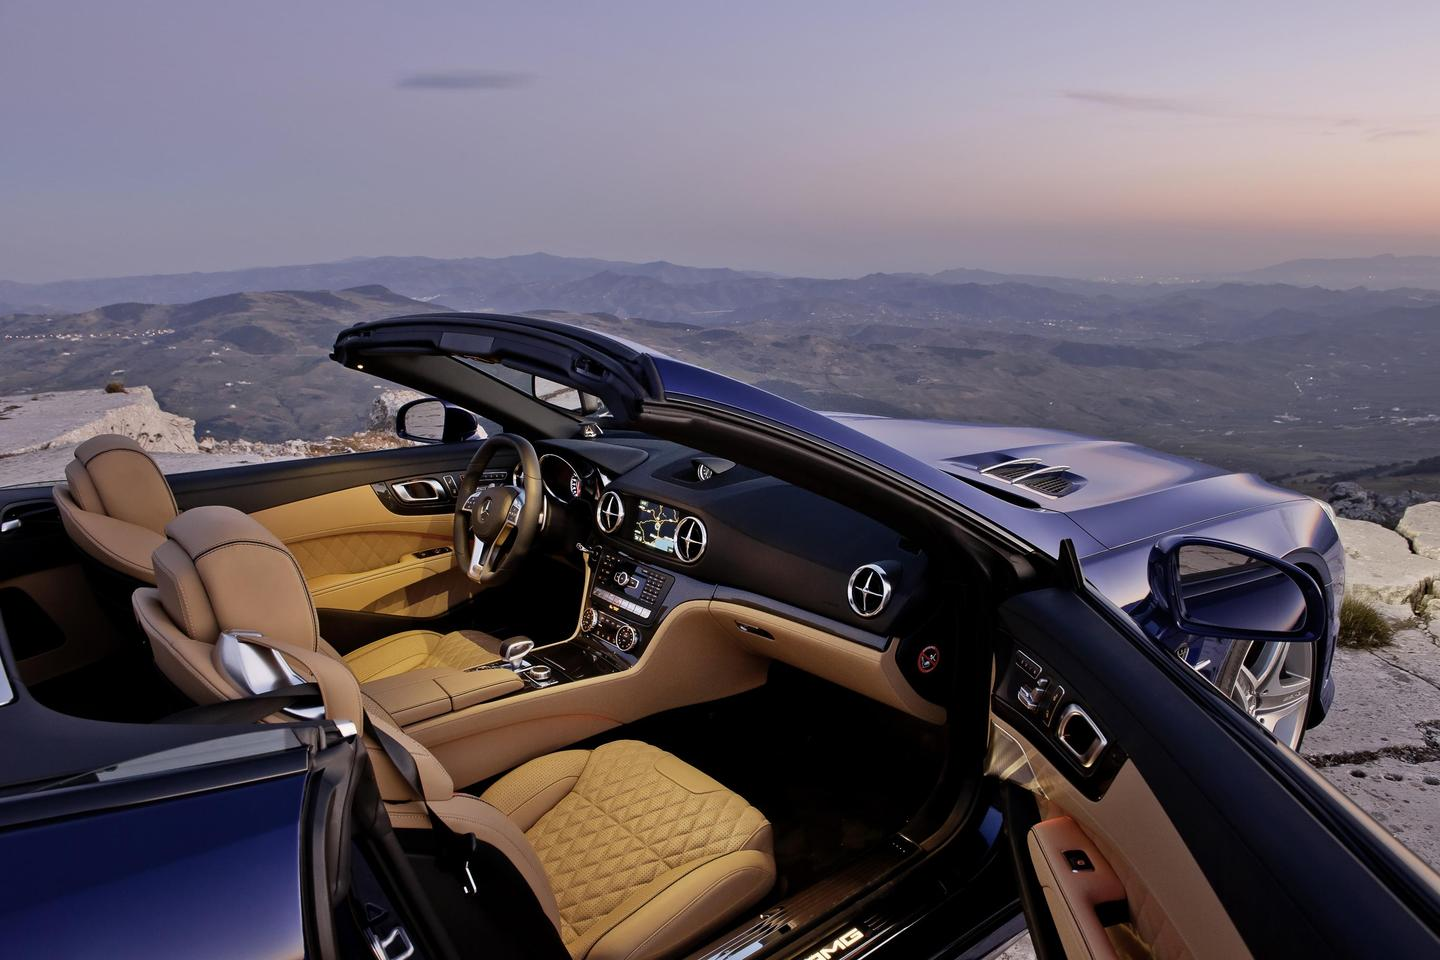 The 2013 Mercedes-Benz SL 65 AMG interior